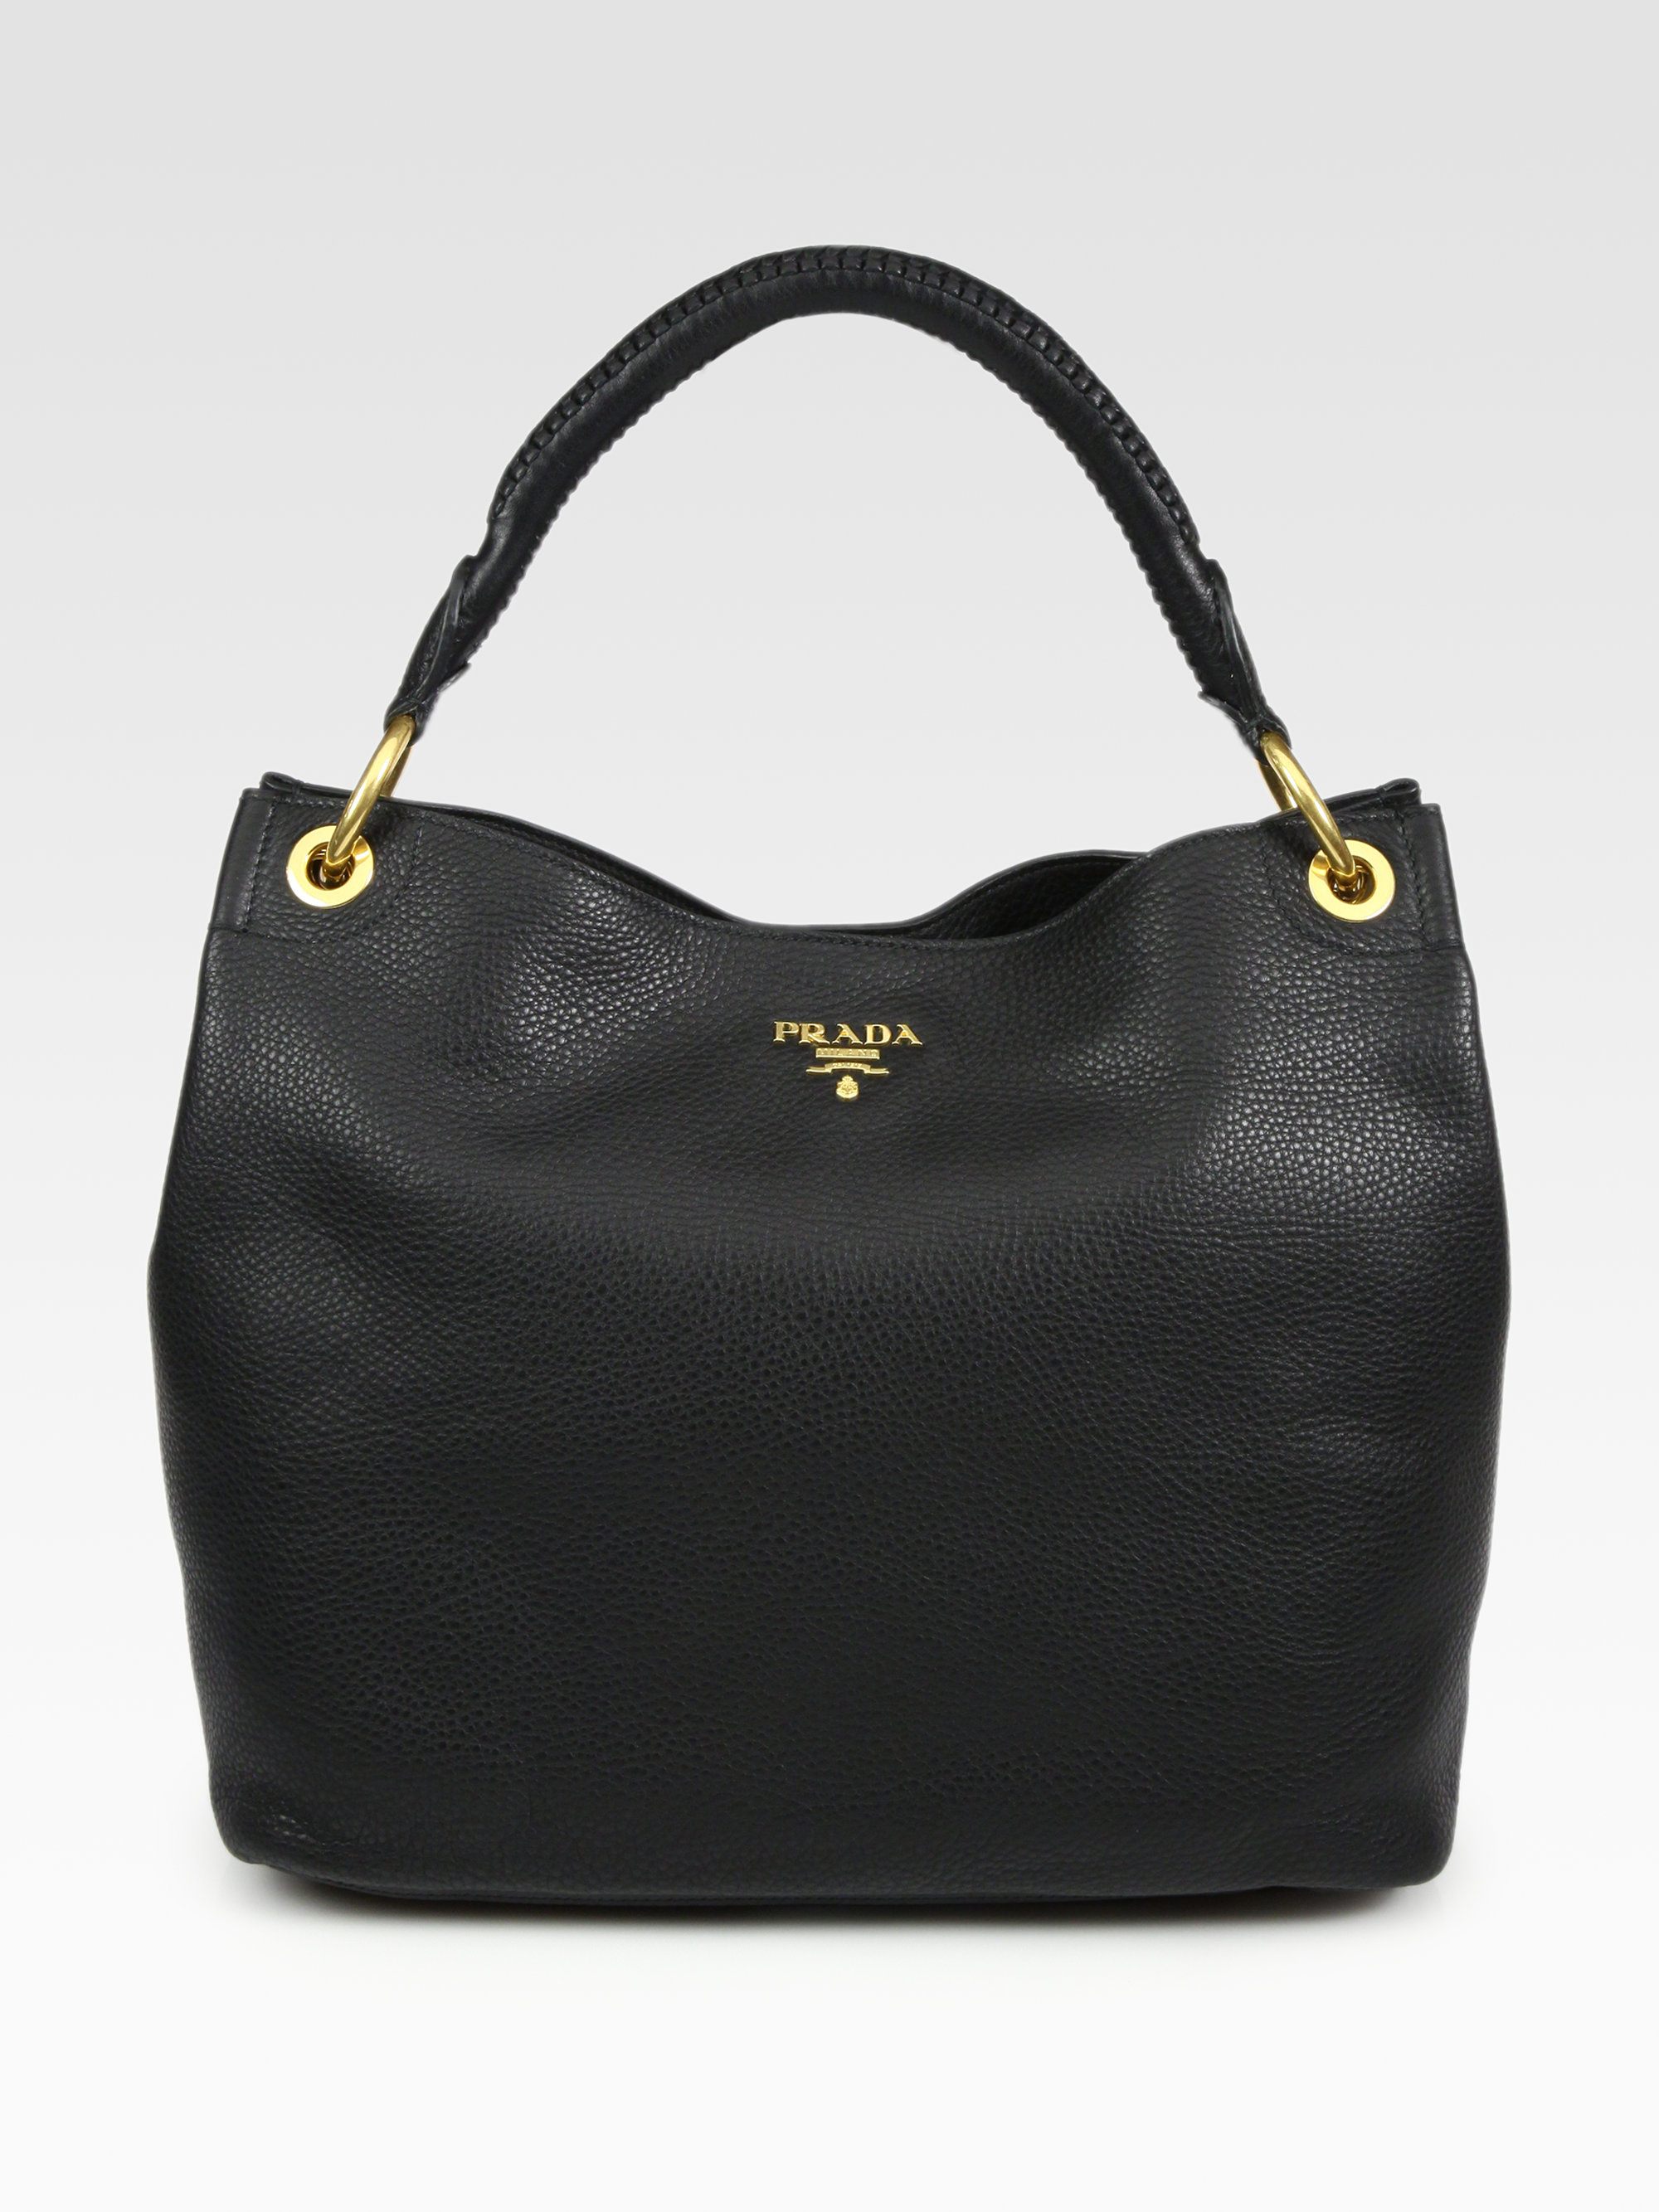 2ad7fe440dd0 Prada Vitello Daino Hobo Bag in Black - Lyst